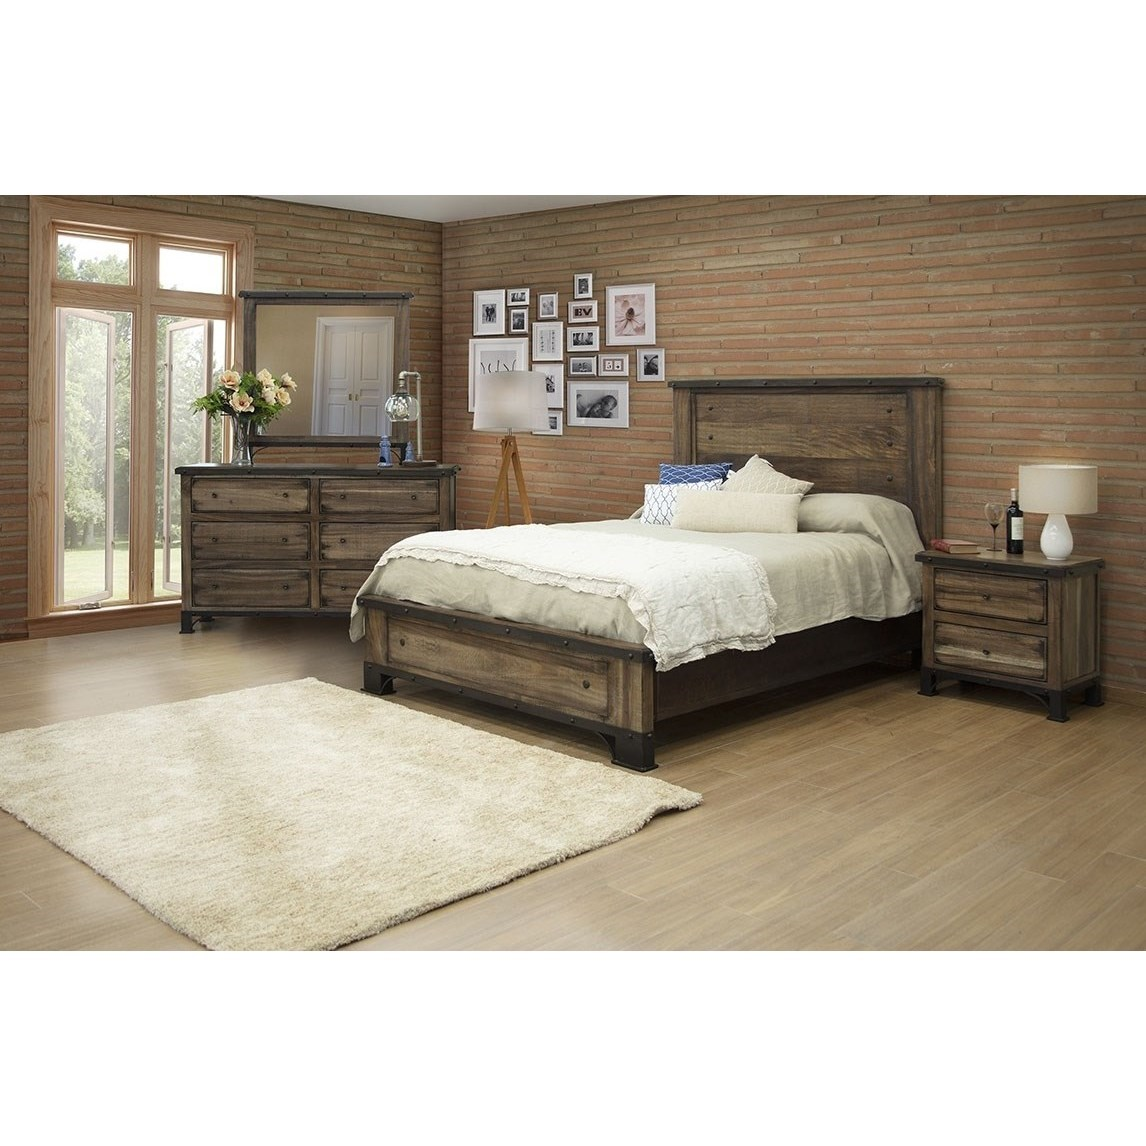 Direct Bedroom Furniture: International Furniture Direct Durango Queen Bedroom Group